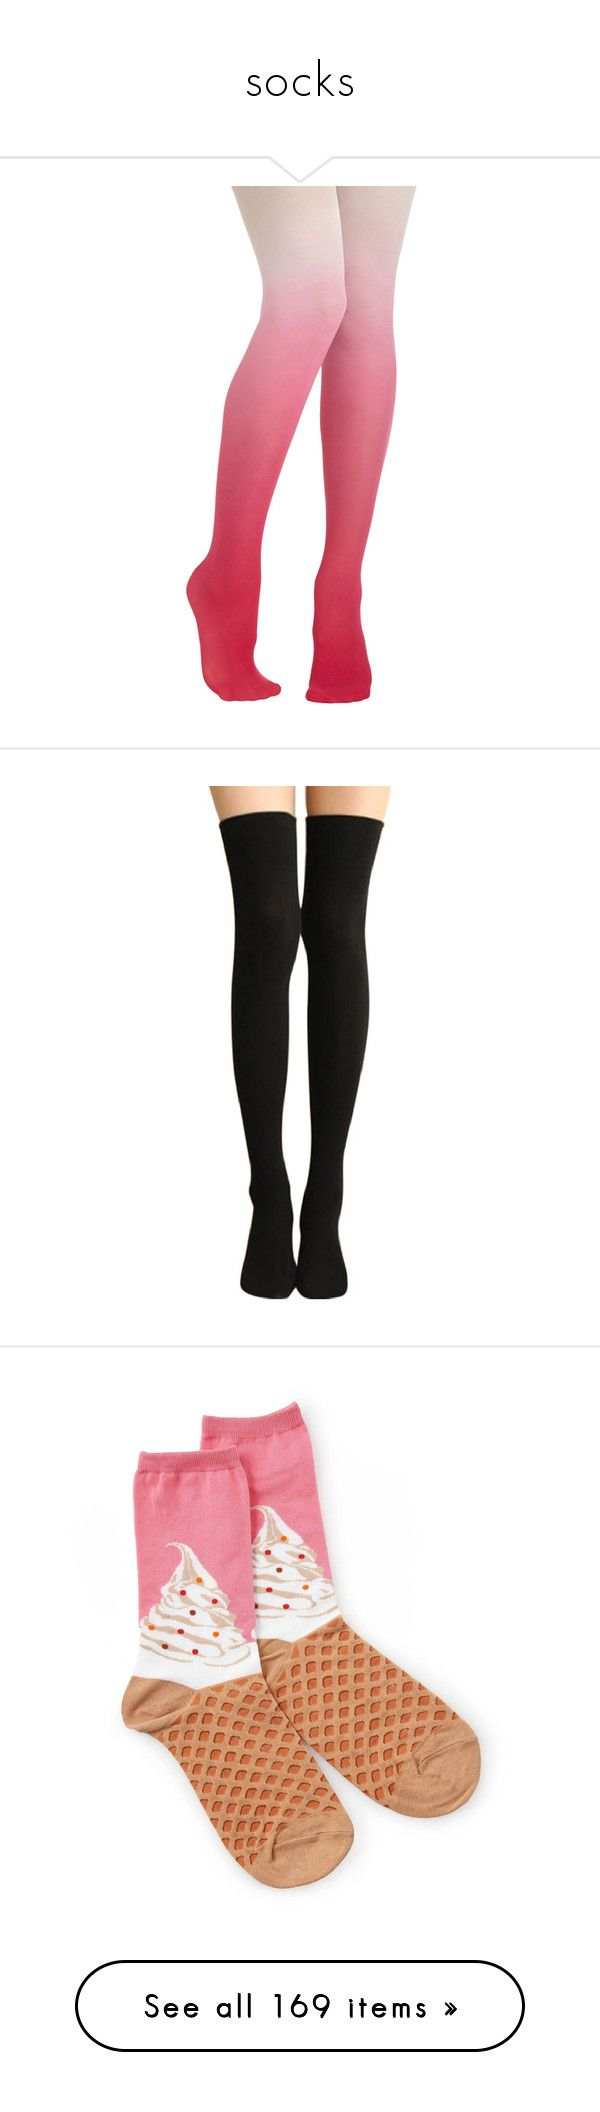 """""""socks"""" by kittensoft ❤ liked on Polyvore featuring intimates, hosiery, tights, socks, bottoms, pink, legs, nylon stockings, nylon tights and ombre tights"""